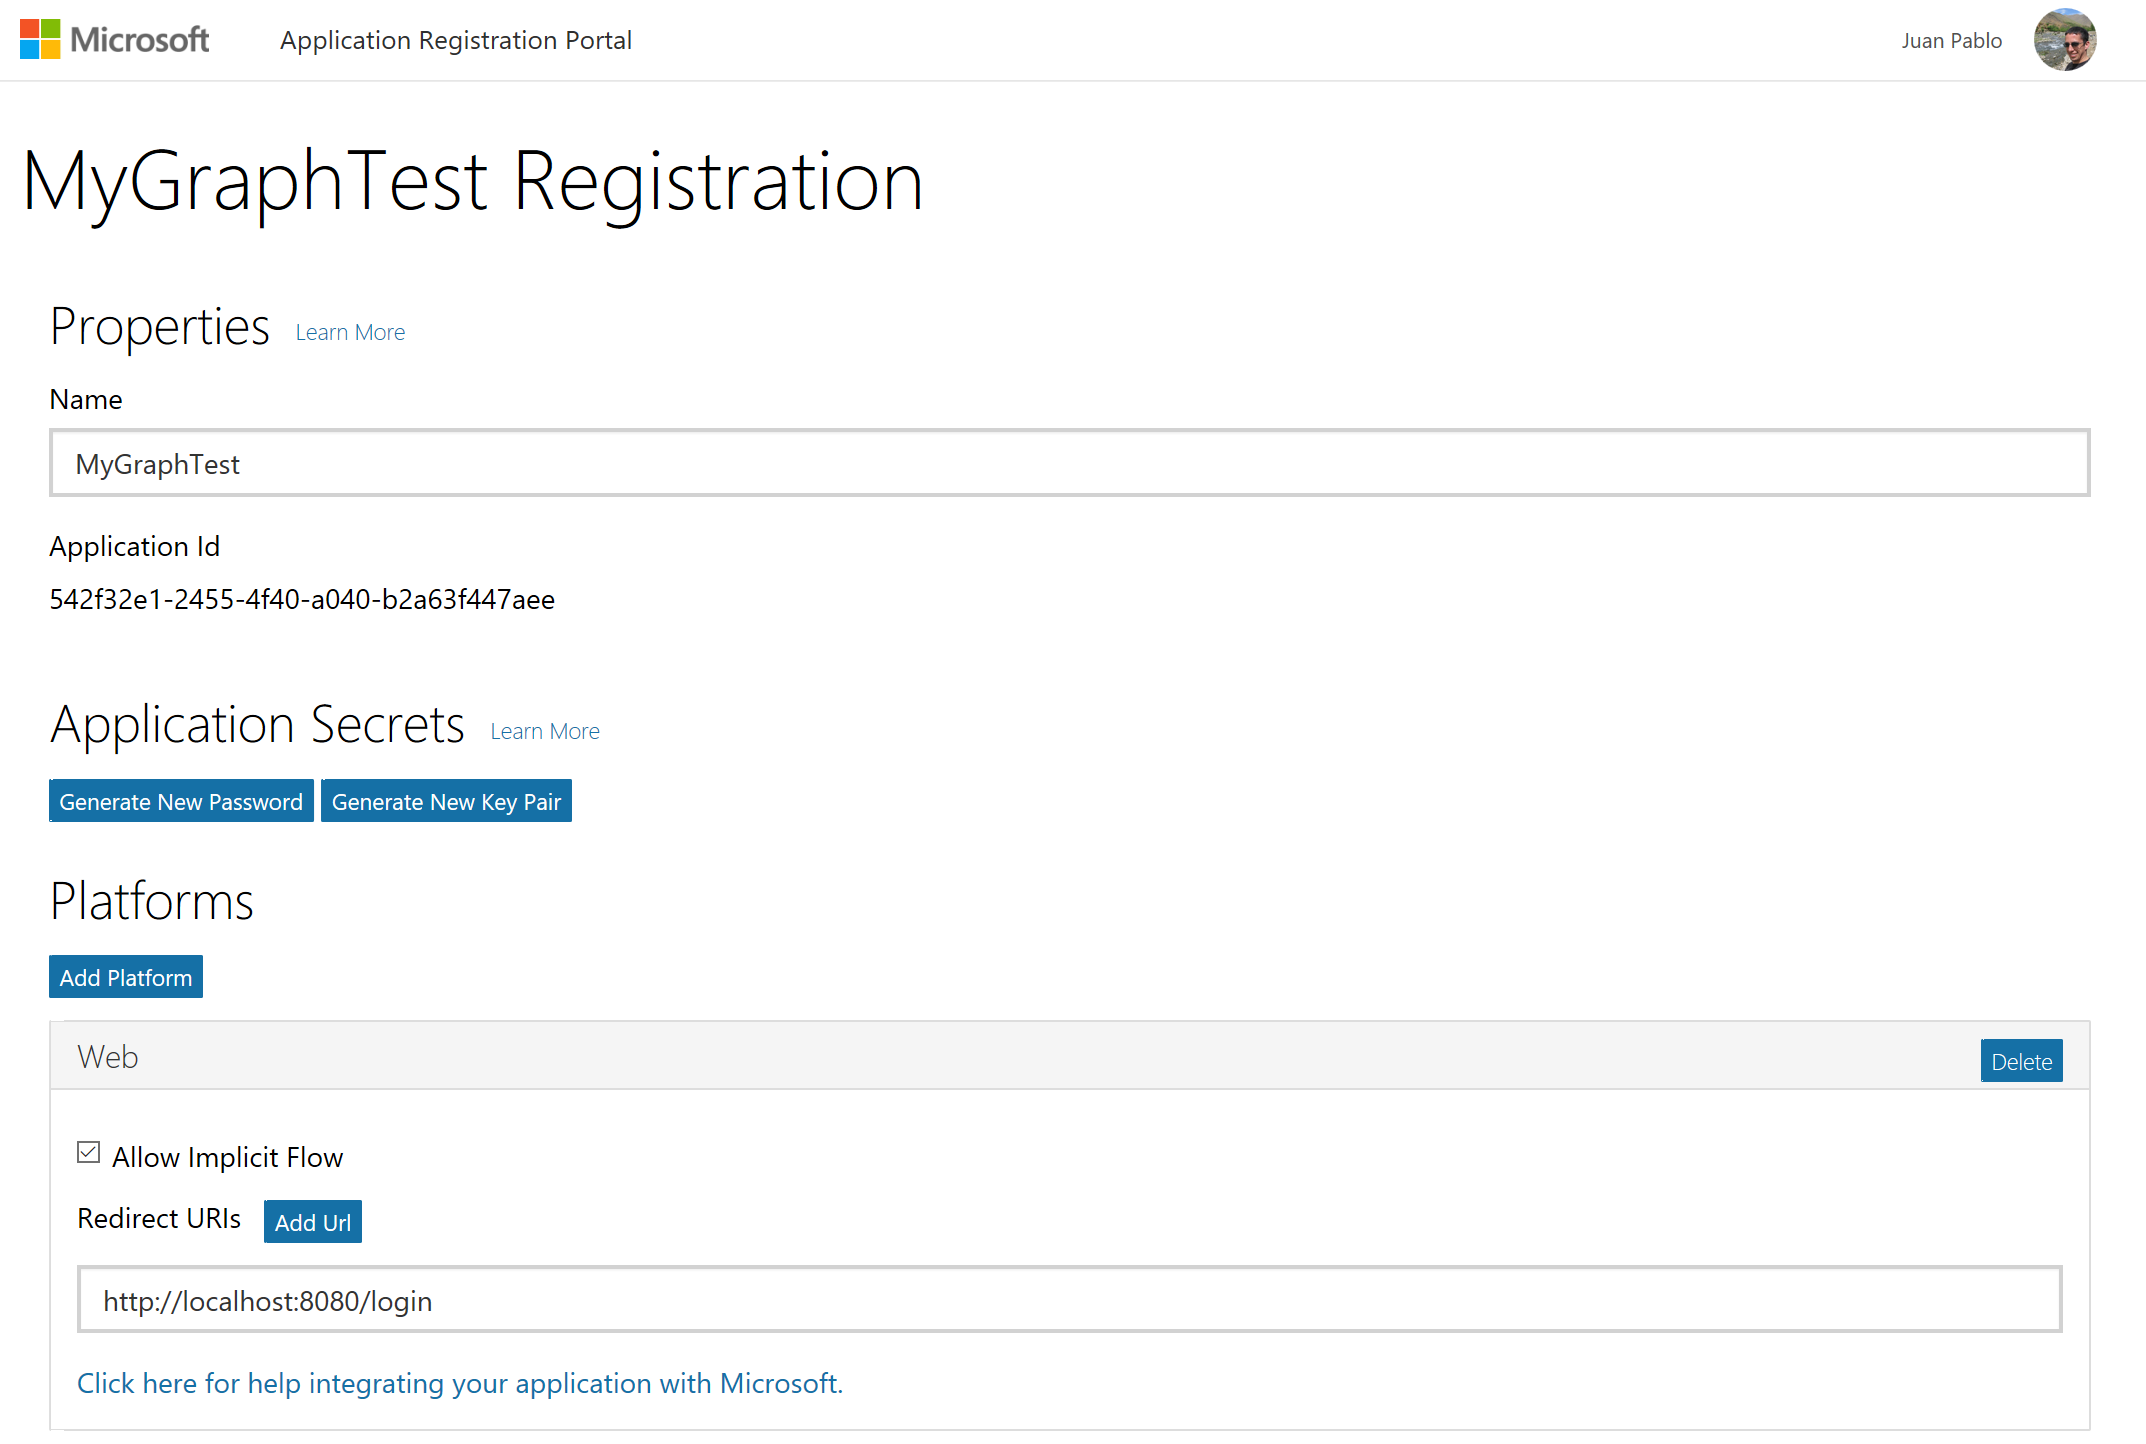 Application Registration View